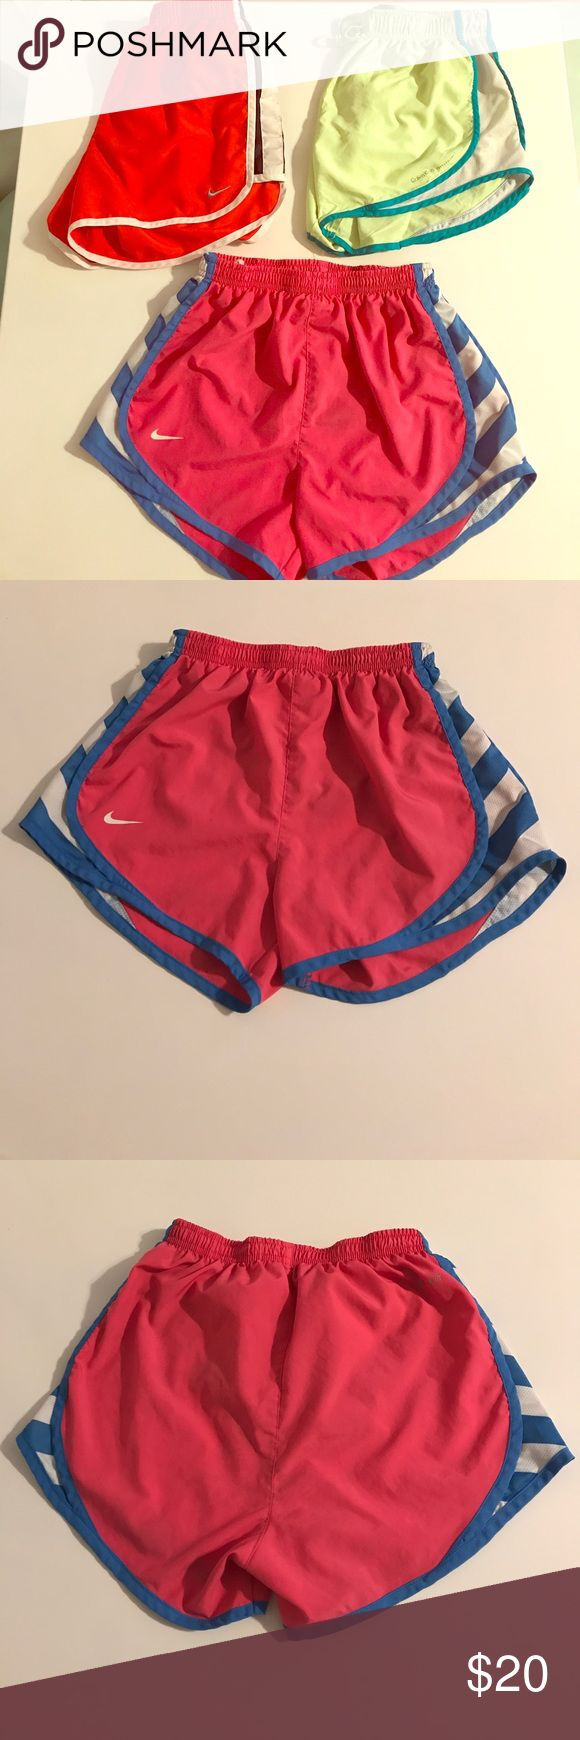 Nike & Calvin Klein running shorts set (xs) 2 Nike and 1 Calvin Klein running shorts set. All xs in size. The pink and fluorescent lime green shorts have spots on them but it is not very visible when worn. It just looks like shadow spots. Nike Pants Track Pants & Joggers